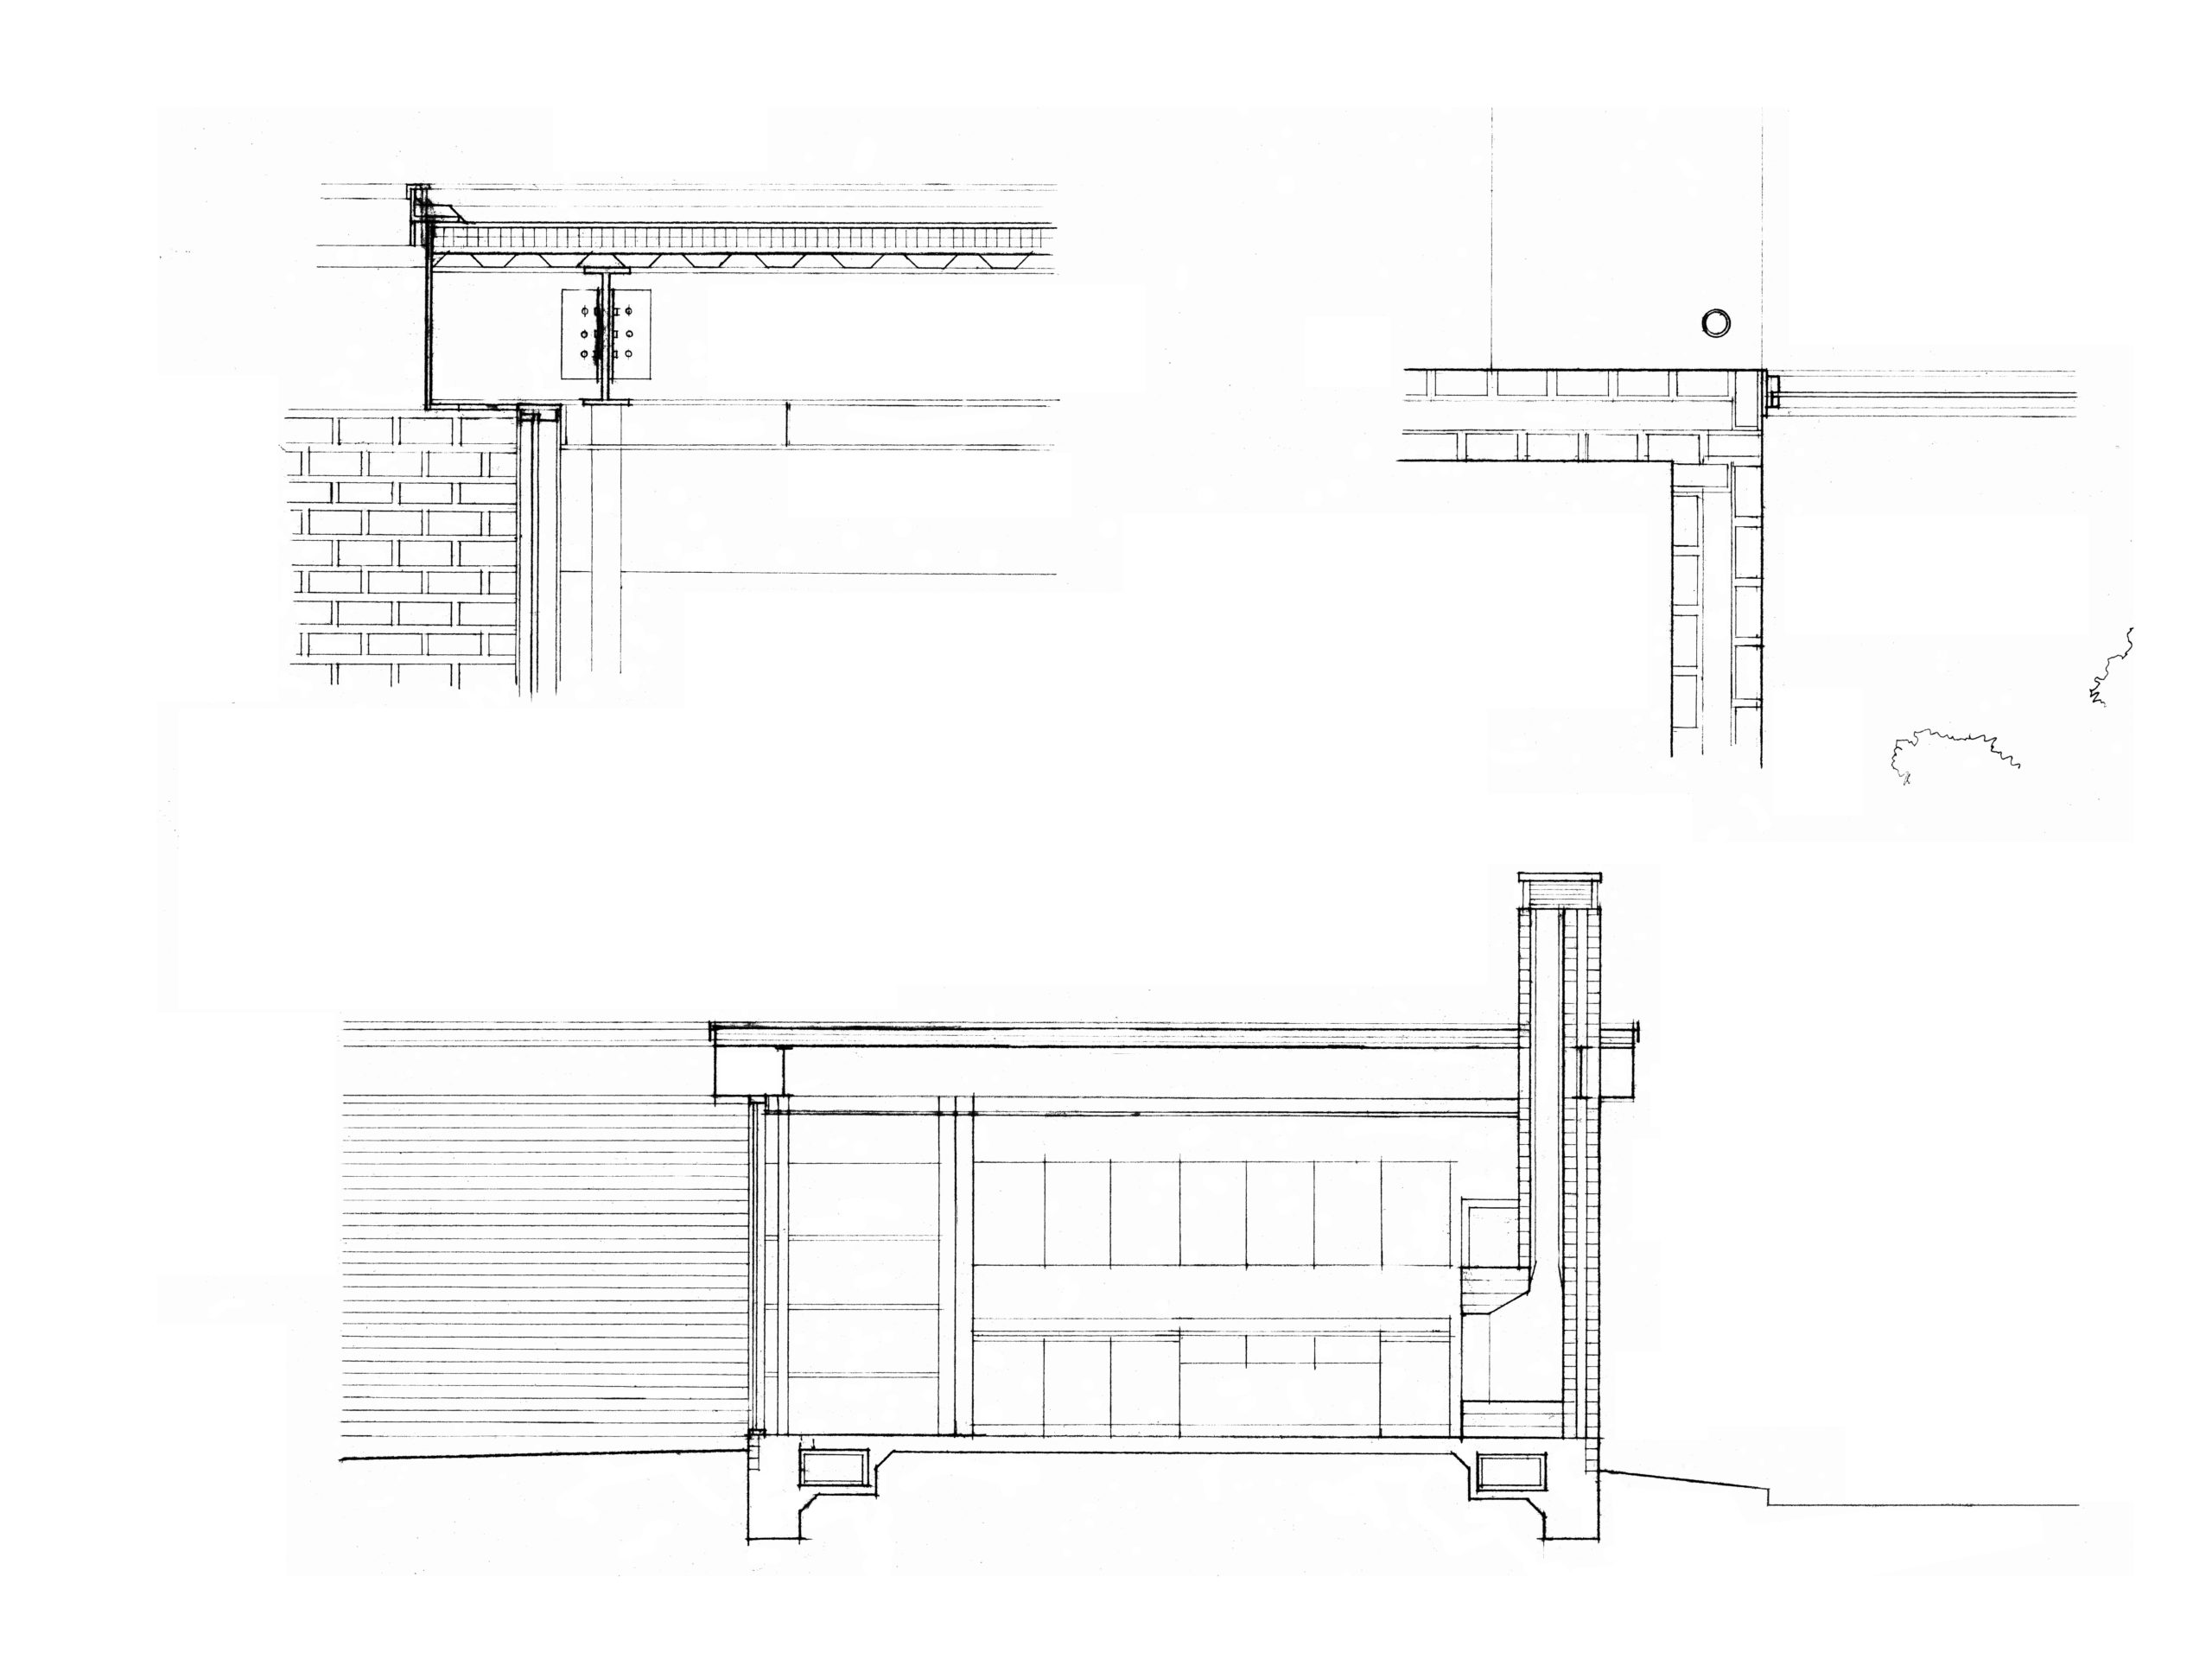 mies house section and details drawing